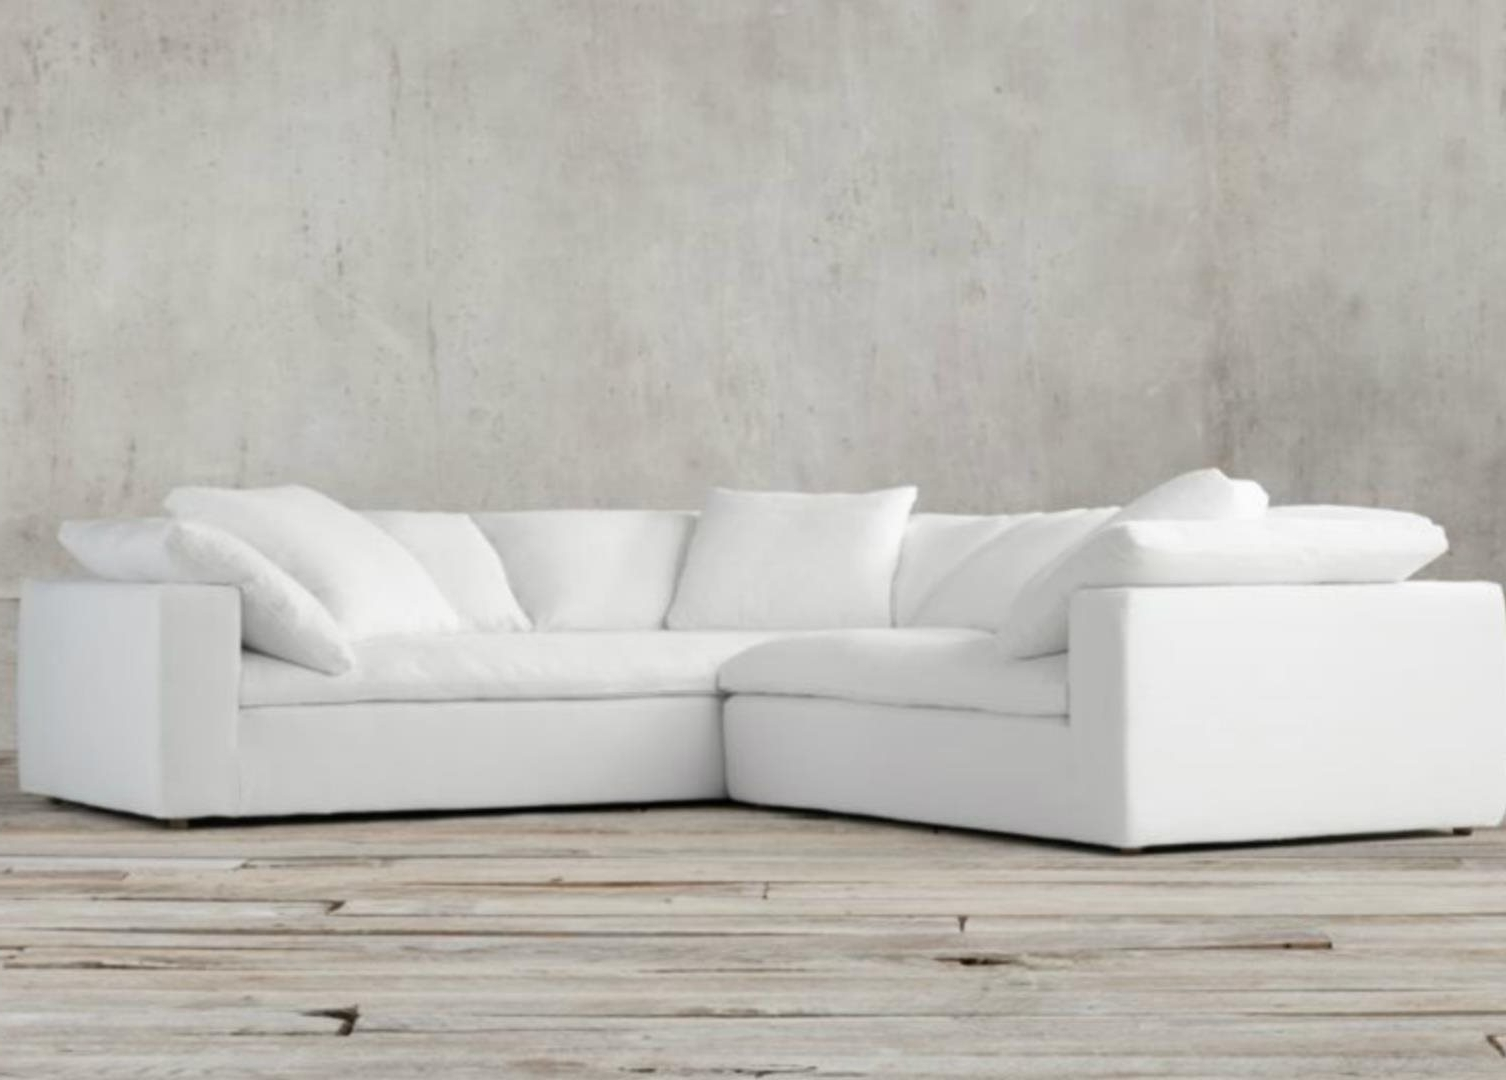 Joining Hardware Sectional Sofas Pertaining To Latest Restoration Hardware Cloud Modular Slipcovered Sofa: For Sale In (View 10 of 15)